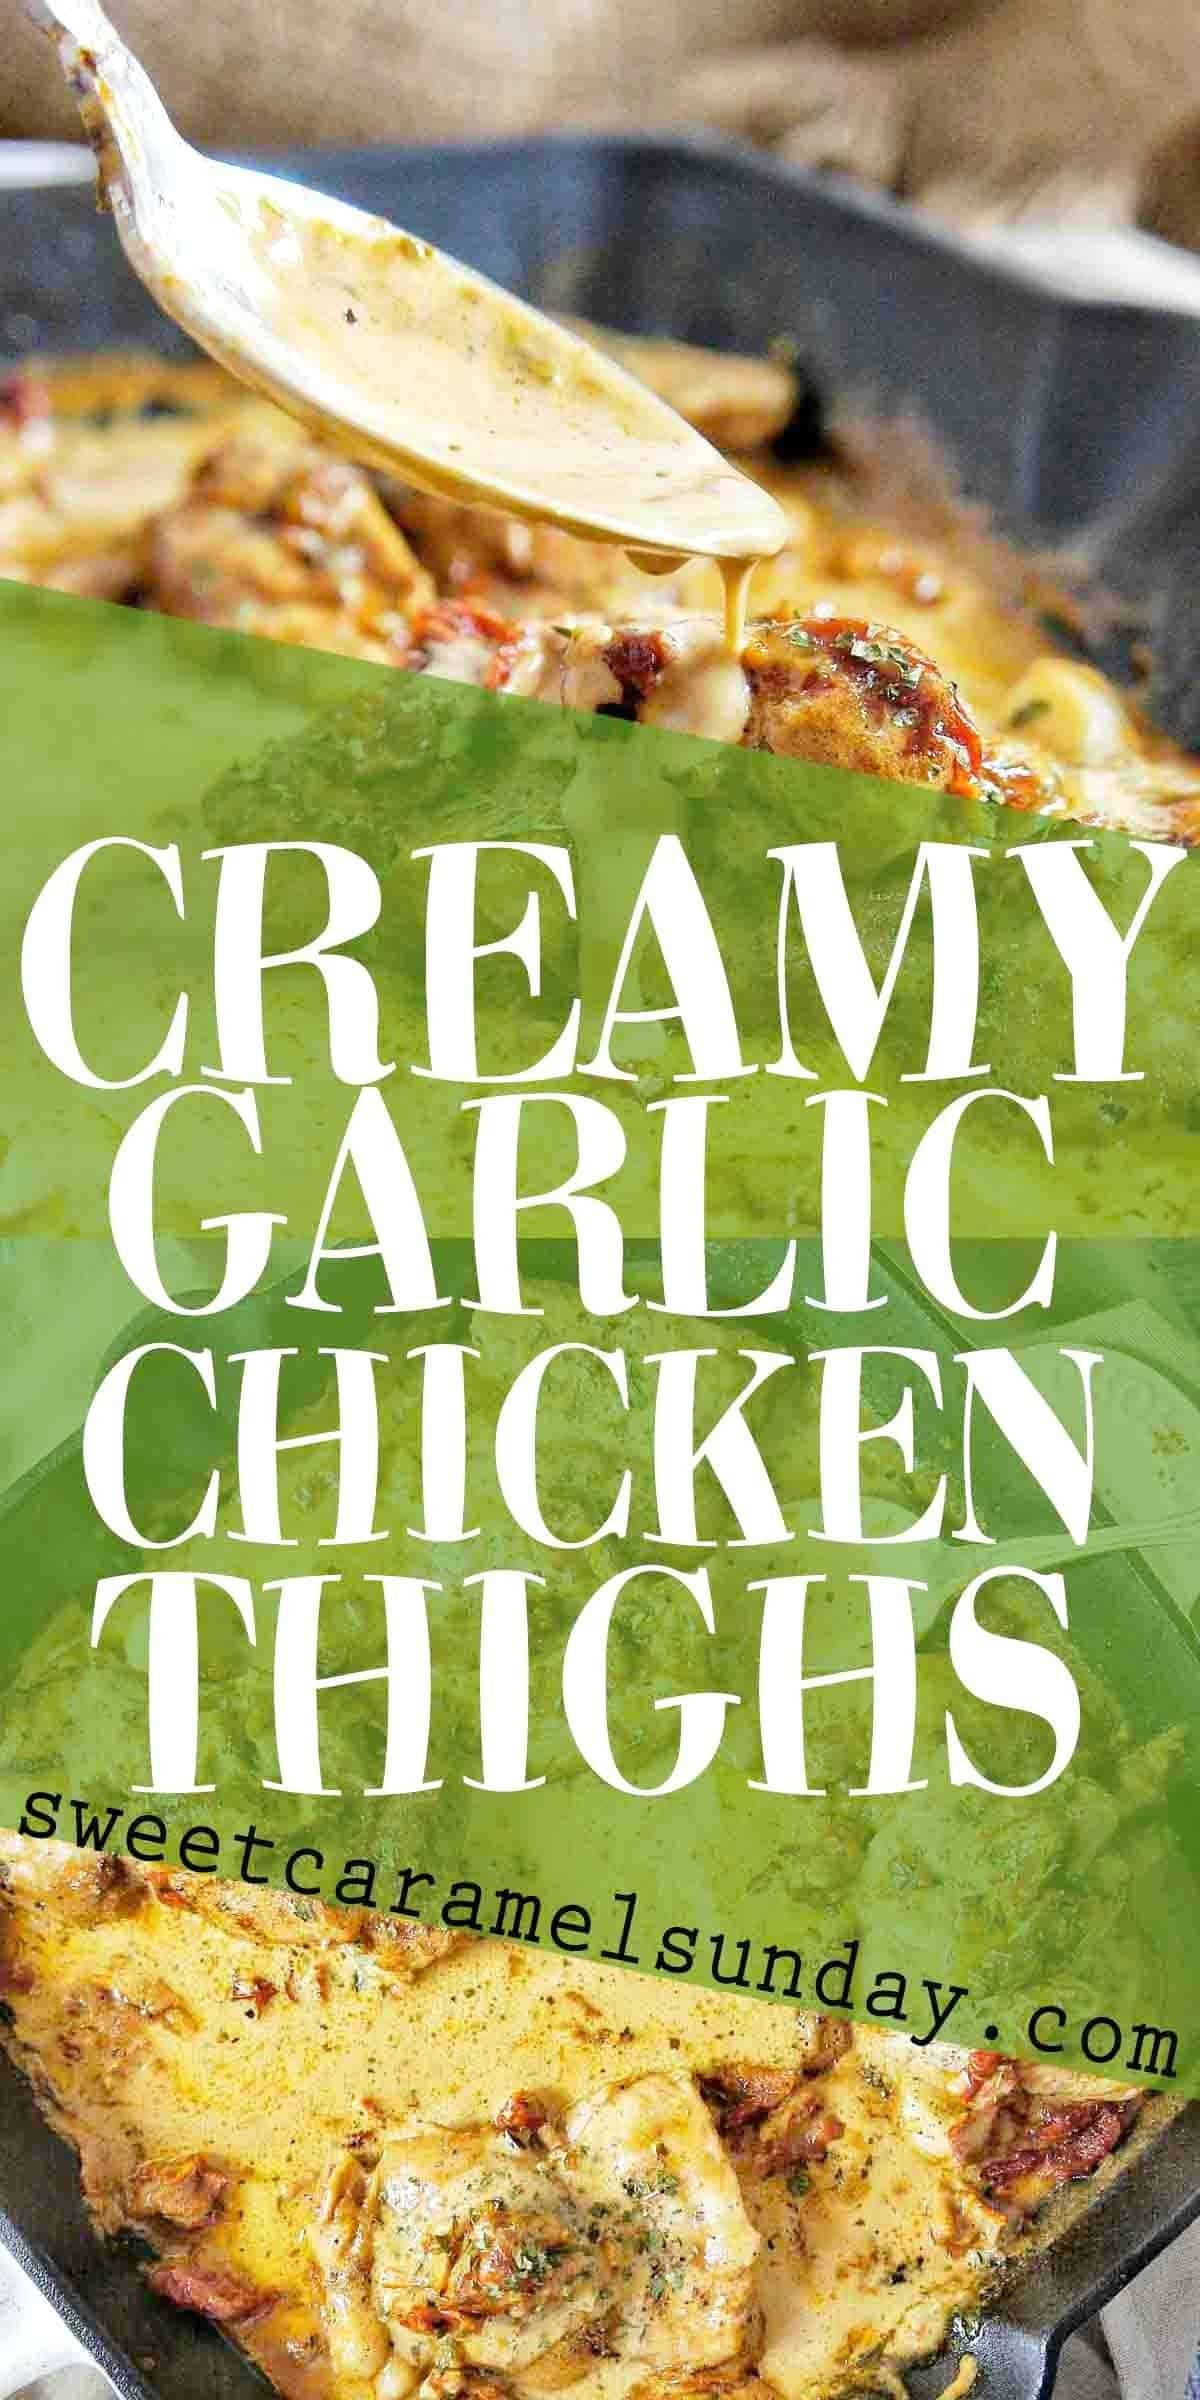 Creamy Garlic Chicken Thighs with text overlay